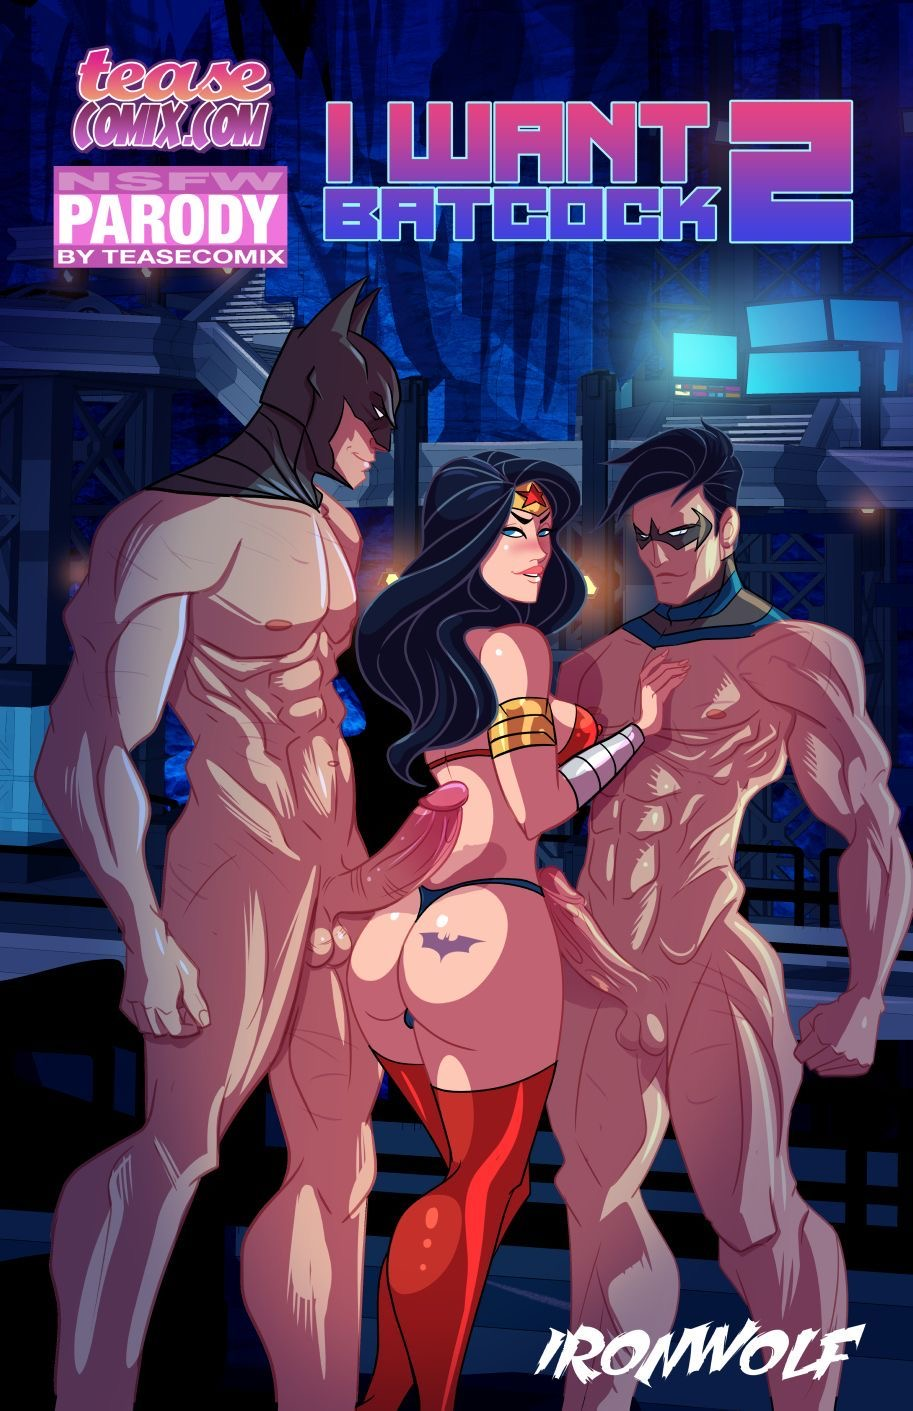 Cartoon-Porn-comics-DC-comics-super-hero-Wonder-Woman-Double-Penetration-diana-prince-batman-bruce-wayne-Nightwing-Dick-Grayson-Robin-Teacher-Sensei-blow-job-creampie-Full-color-Threesome-thigh-high-boots-stockings-I-want-batcock-part-2-Fumetti-porno-di-fumetti-DC-fumetti-supereroi-Wonder-Woman-Doppia-penetrazione-diana-principe-insegnante-creampie-Full-color-Trio-coscia-stivali-alti-calze-voglio-batcock-parte-2